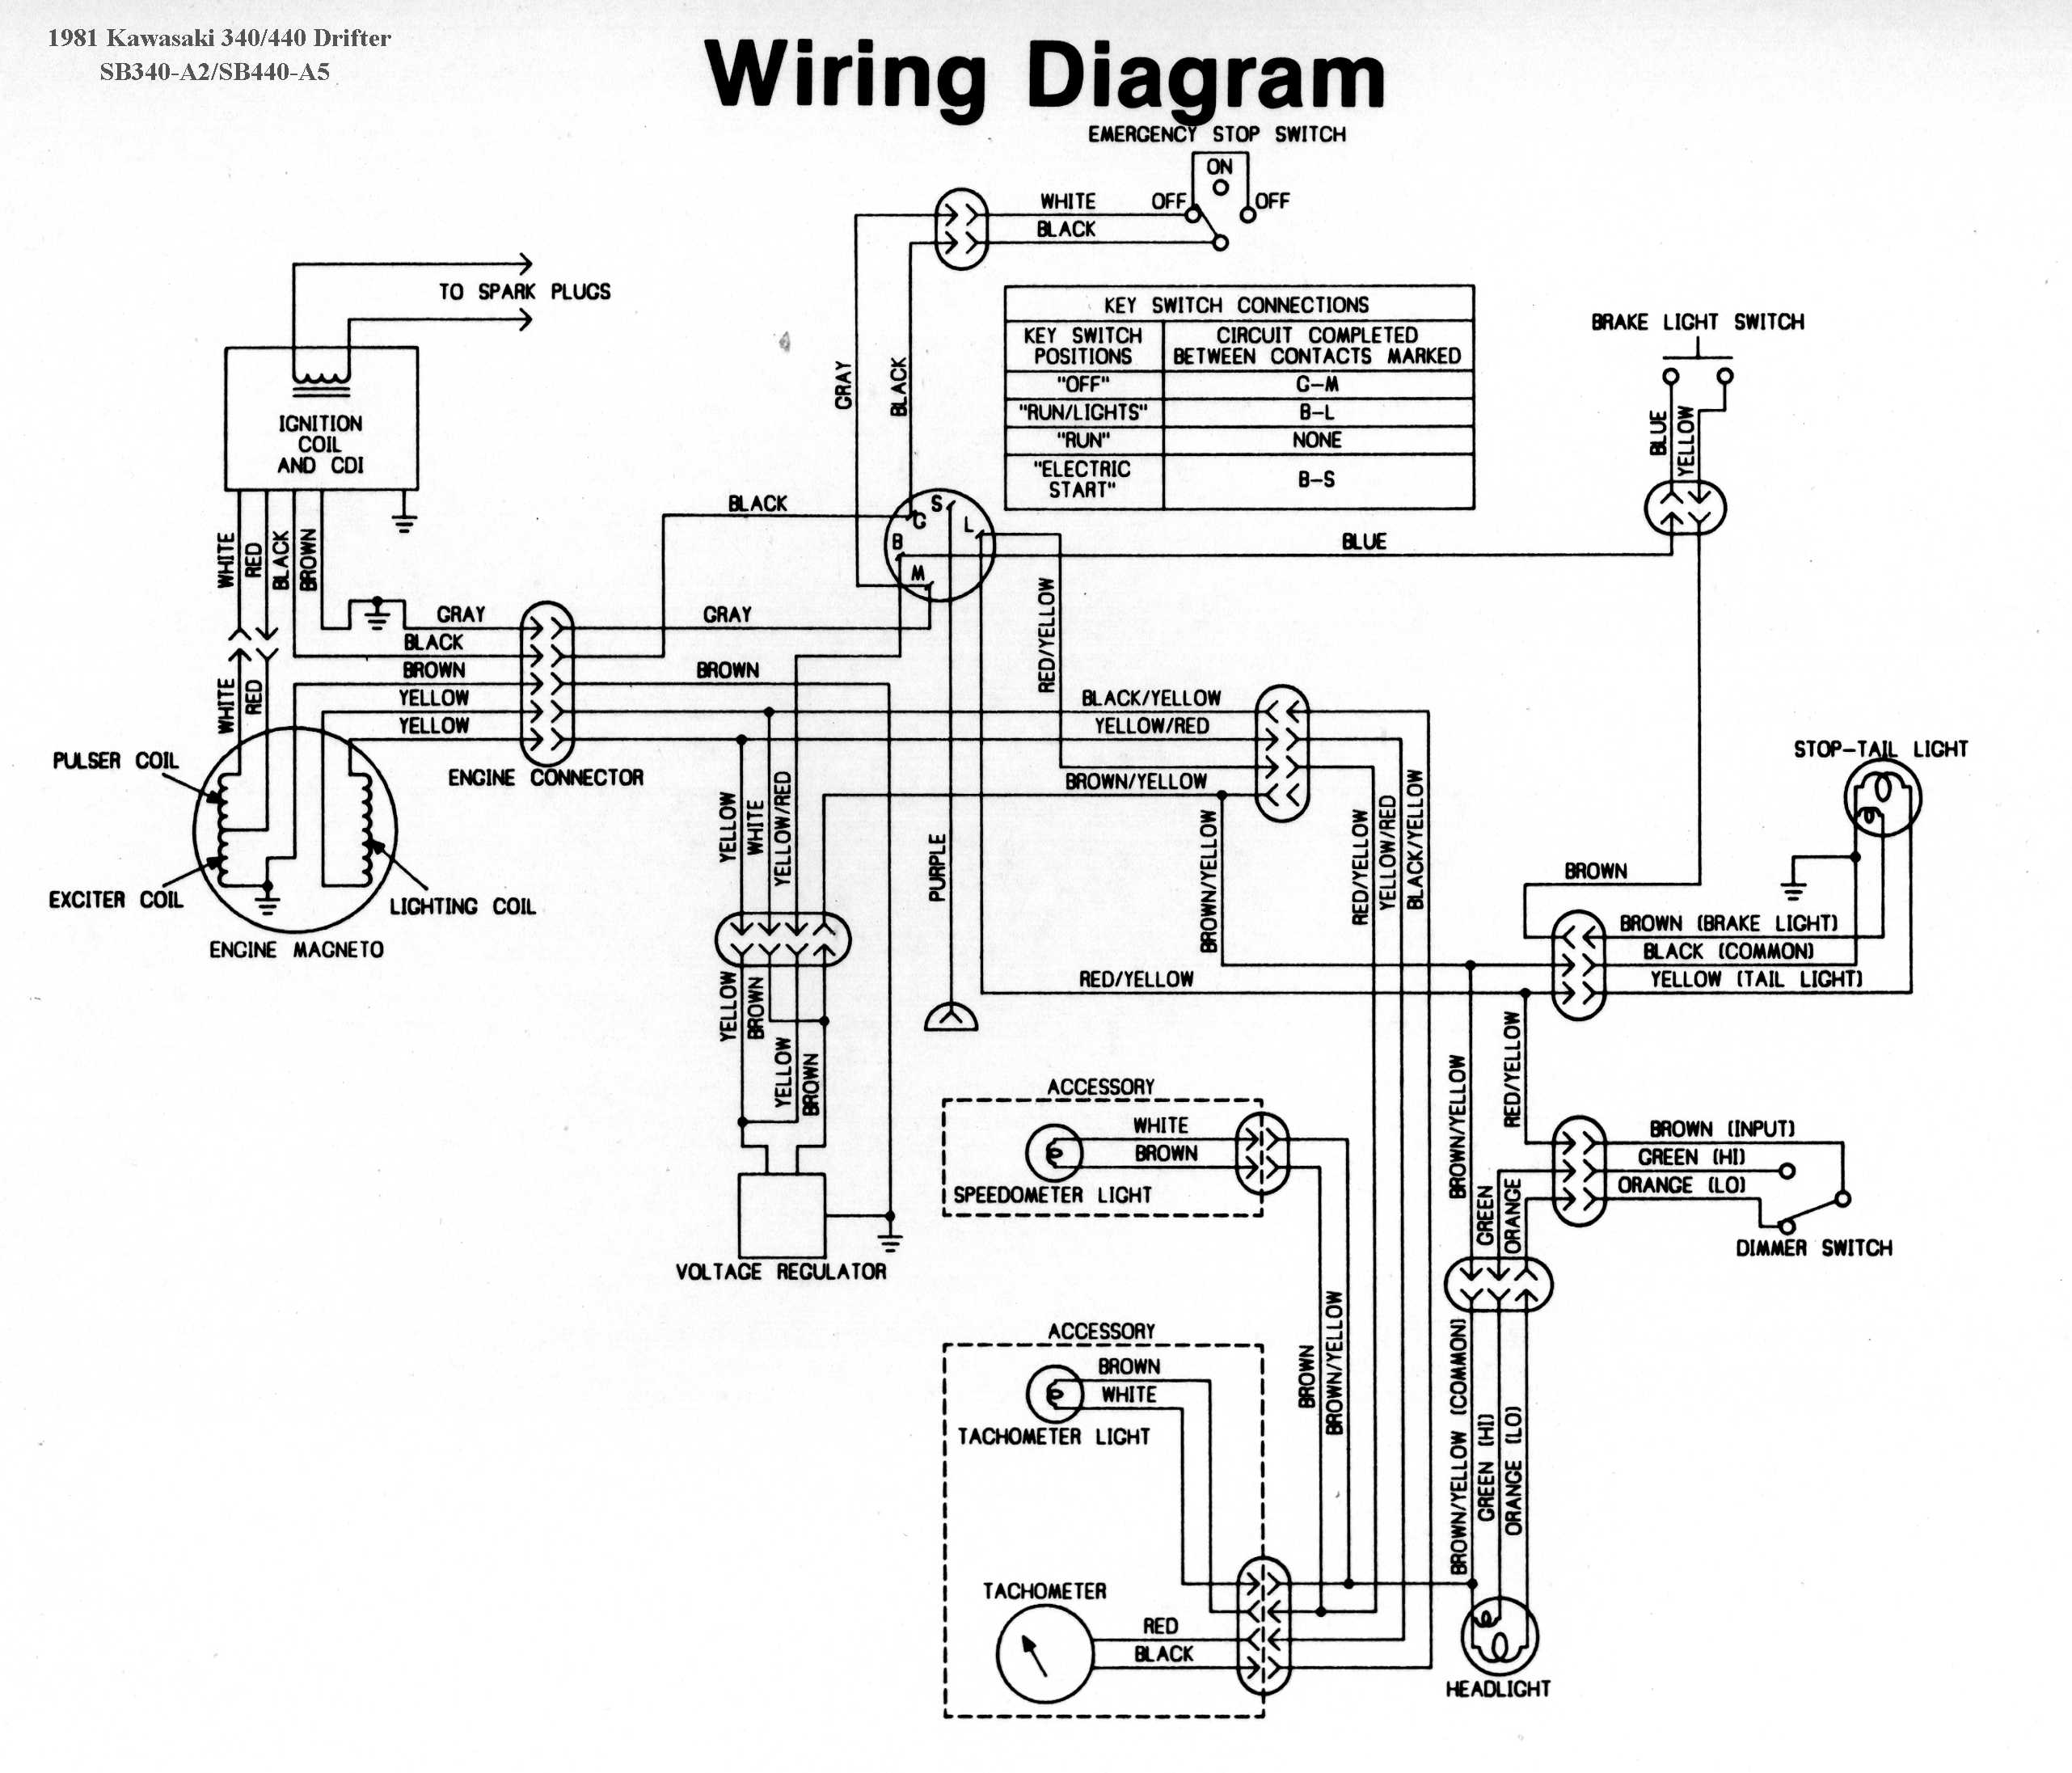 Kawasaki Volvo Wiring Diagrams 1980 Kawasaki Ltd 440 Wiring Diagram